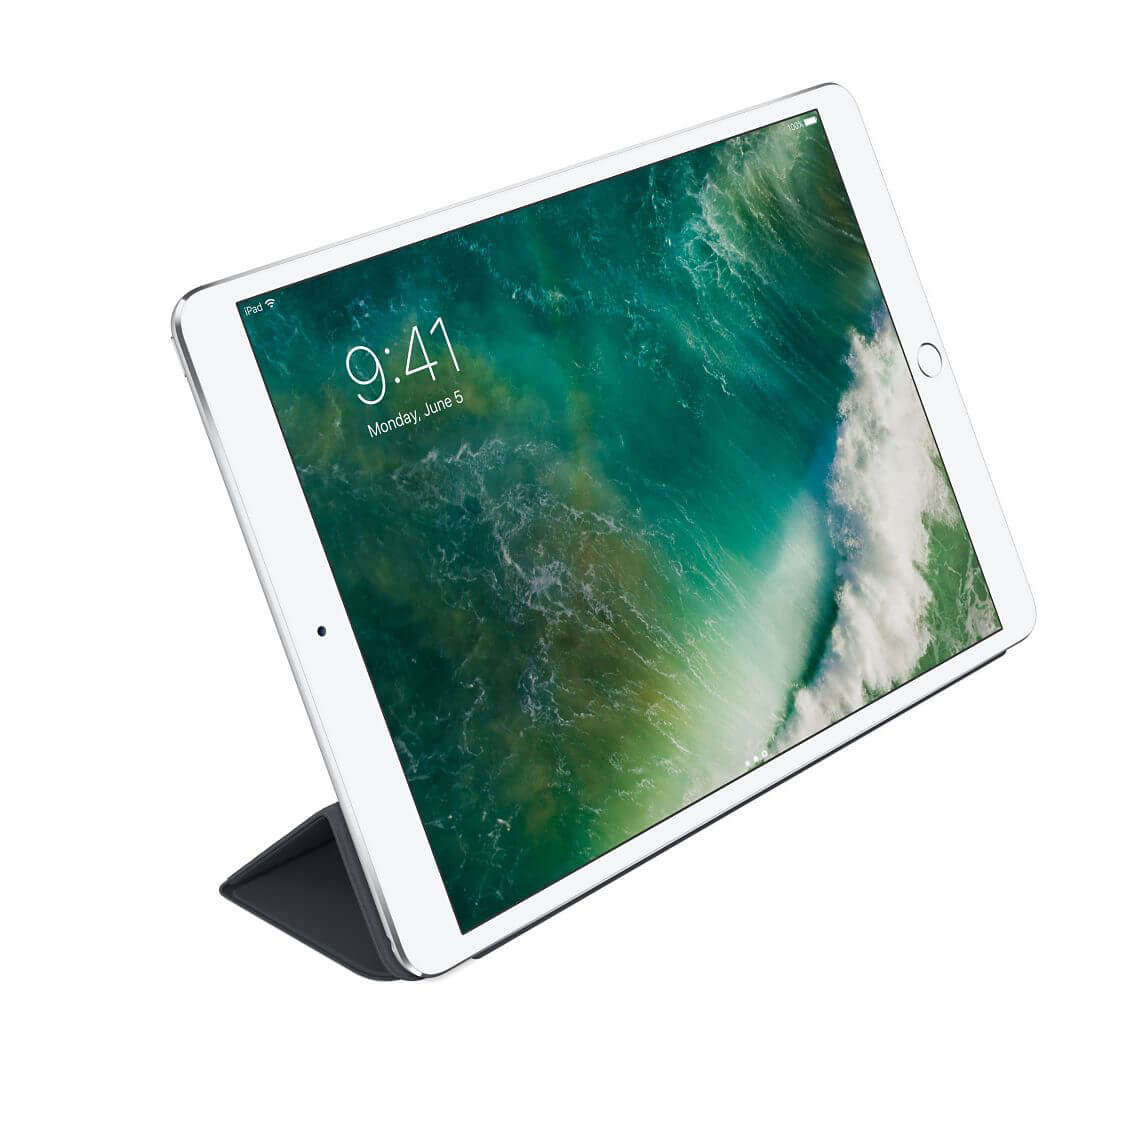 Smart Cover 10,5 tuuman iPad Prolle - hiilenharmaa